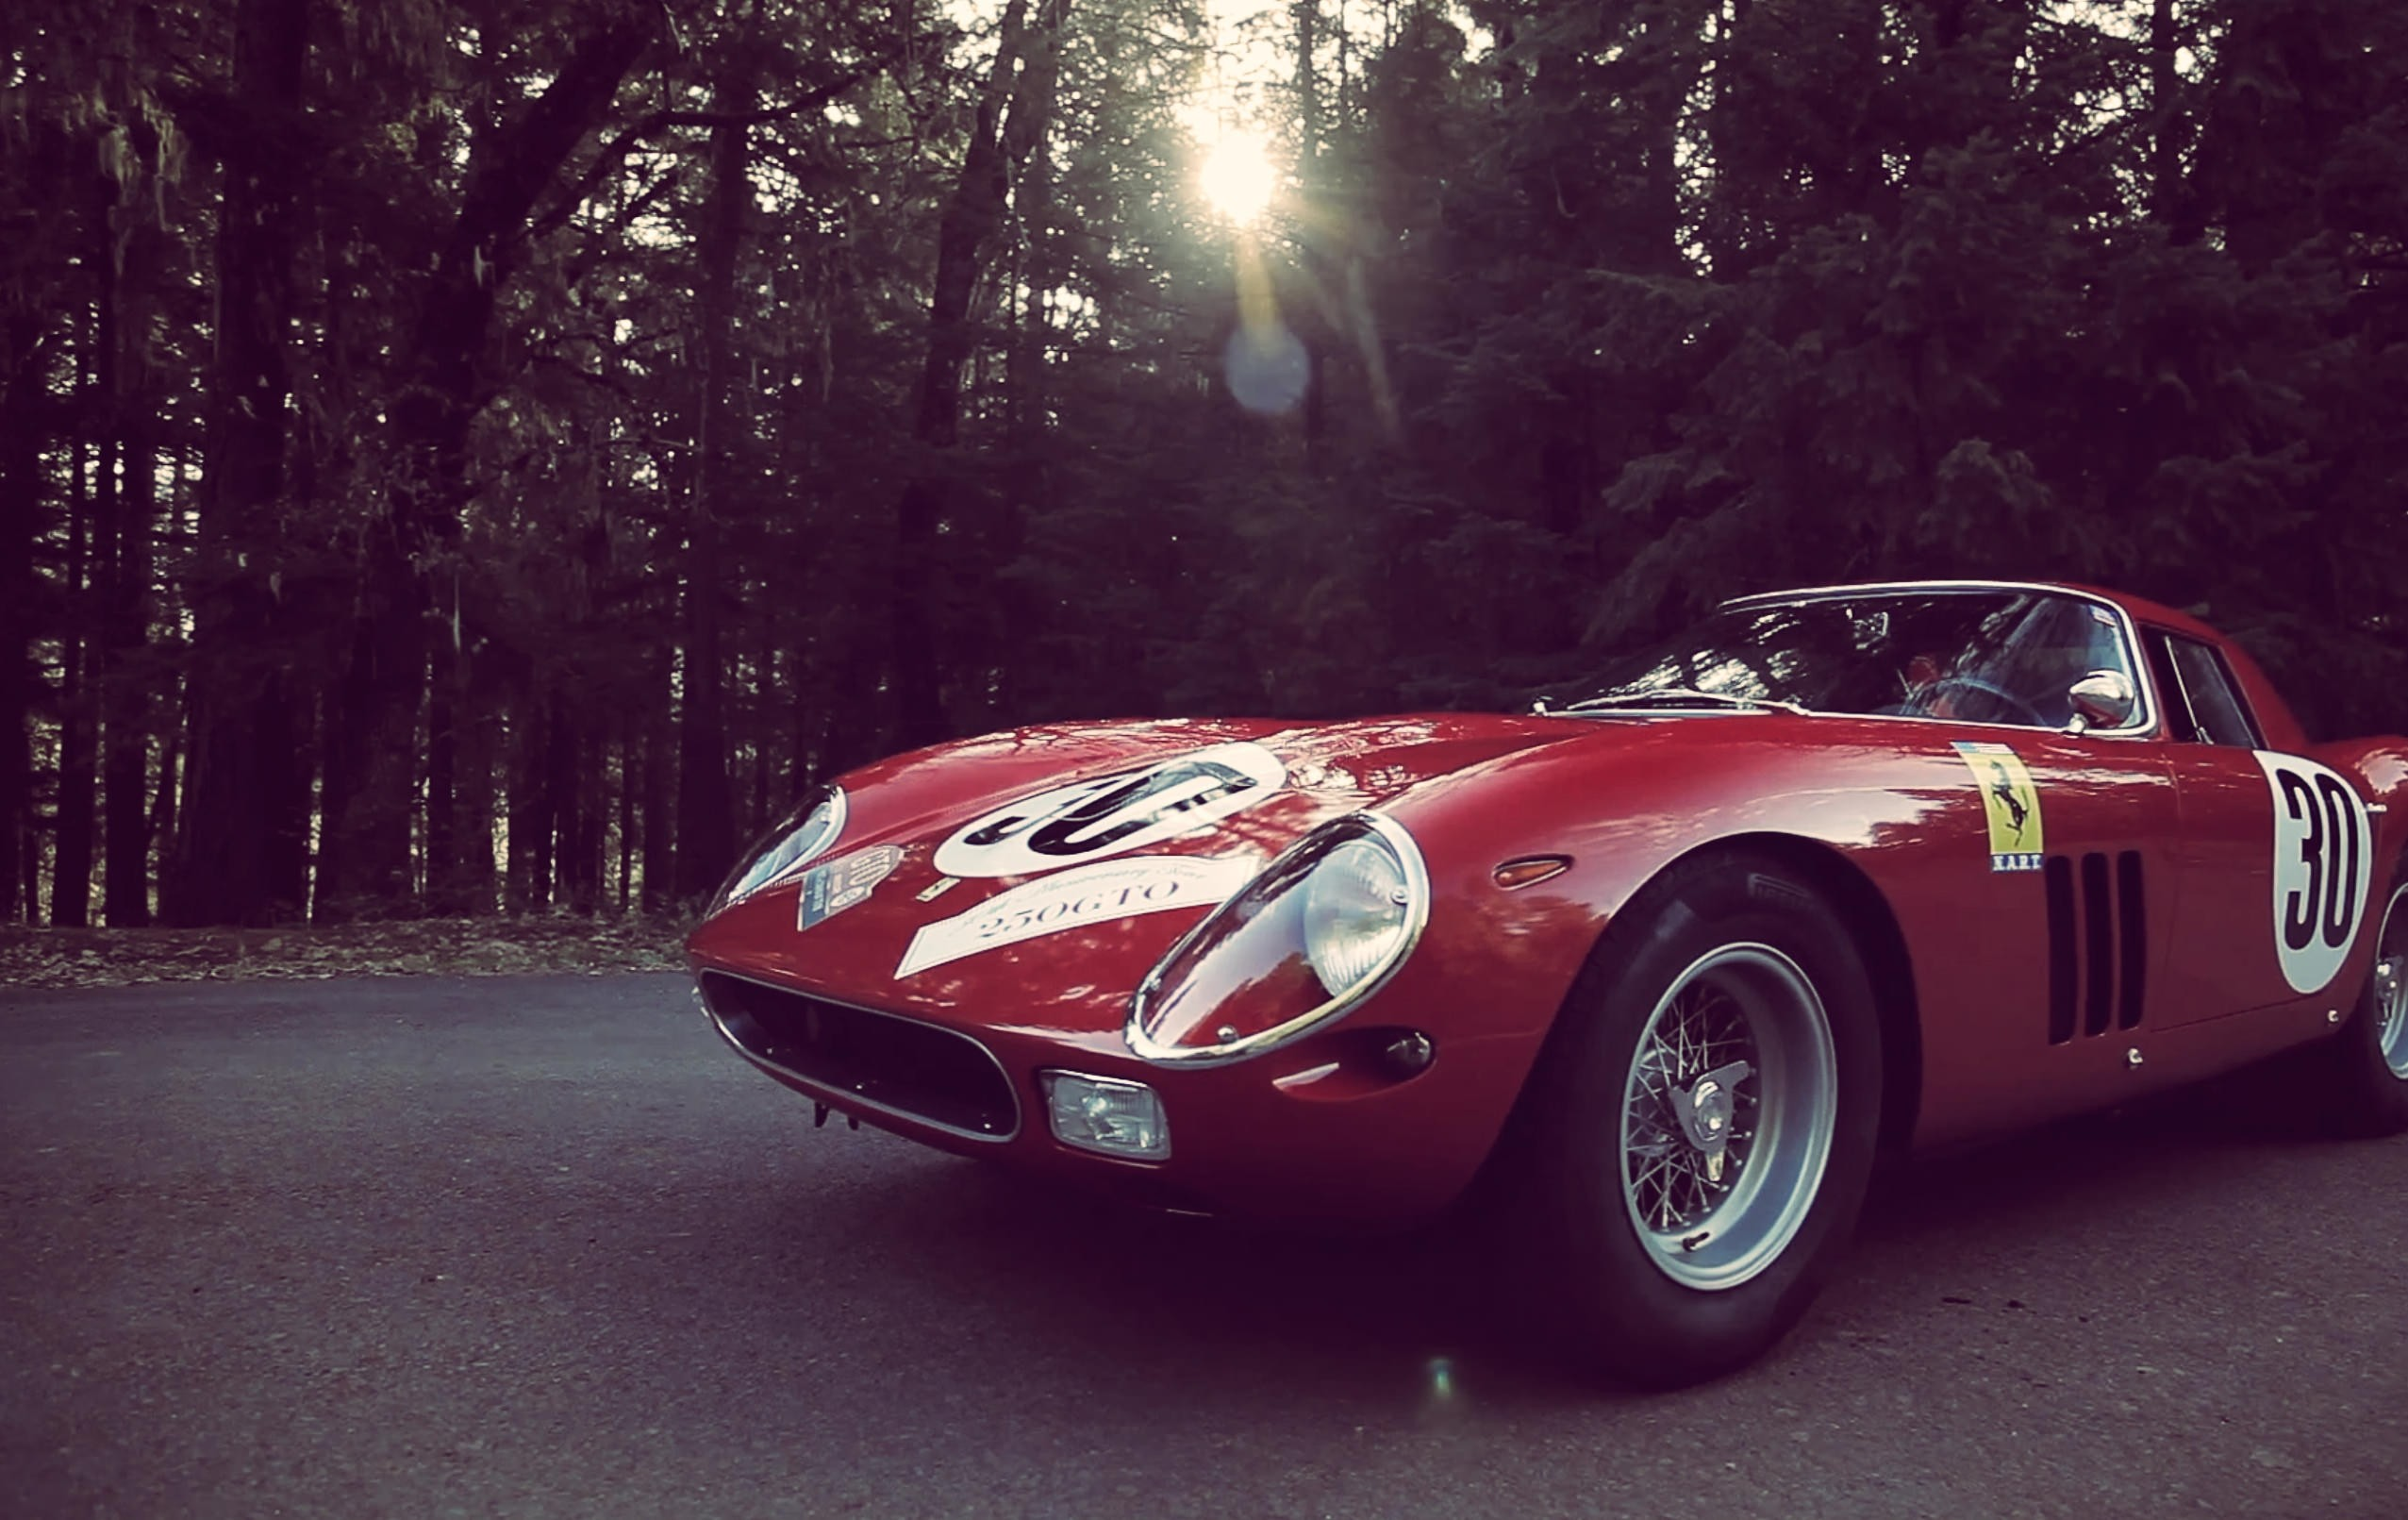 Ferrari 250 GTO Wallpaper 24   [2553x1611] 2553x1611